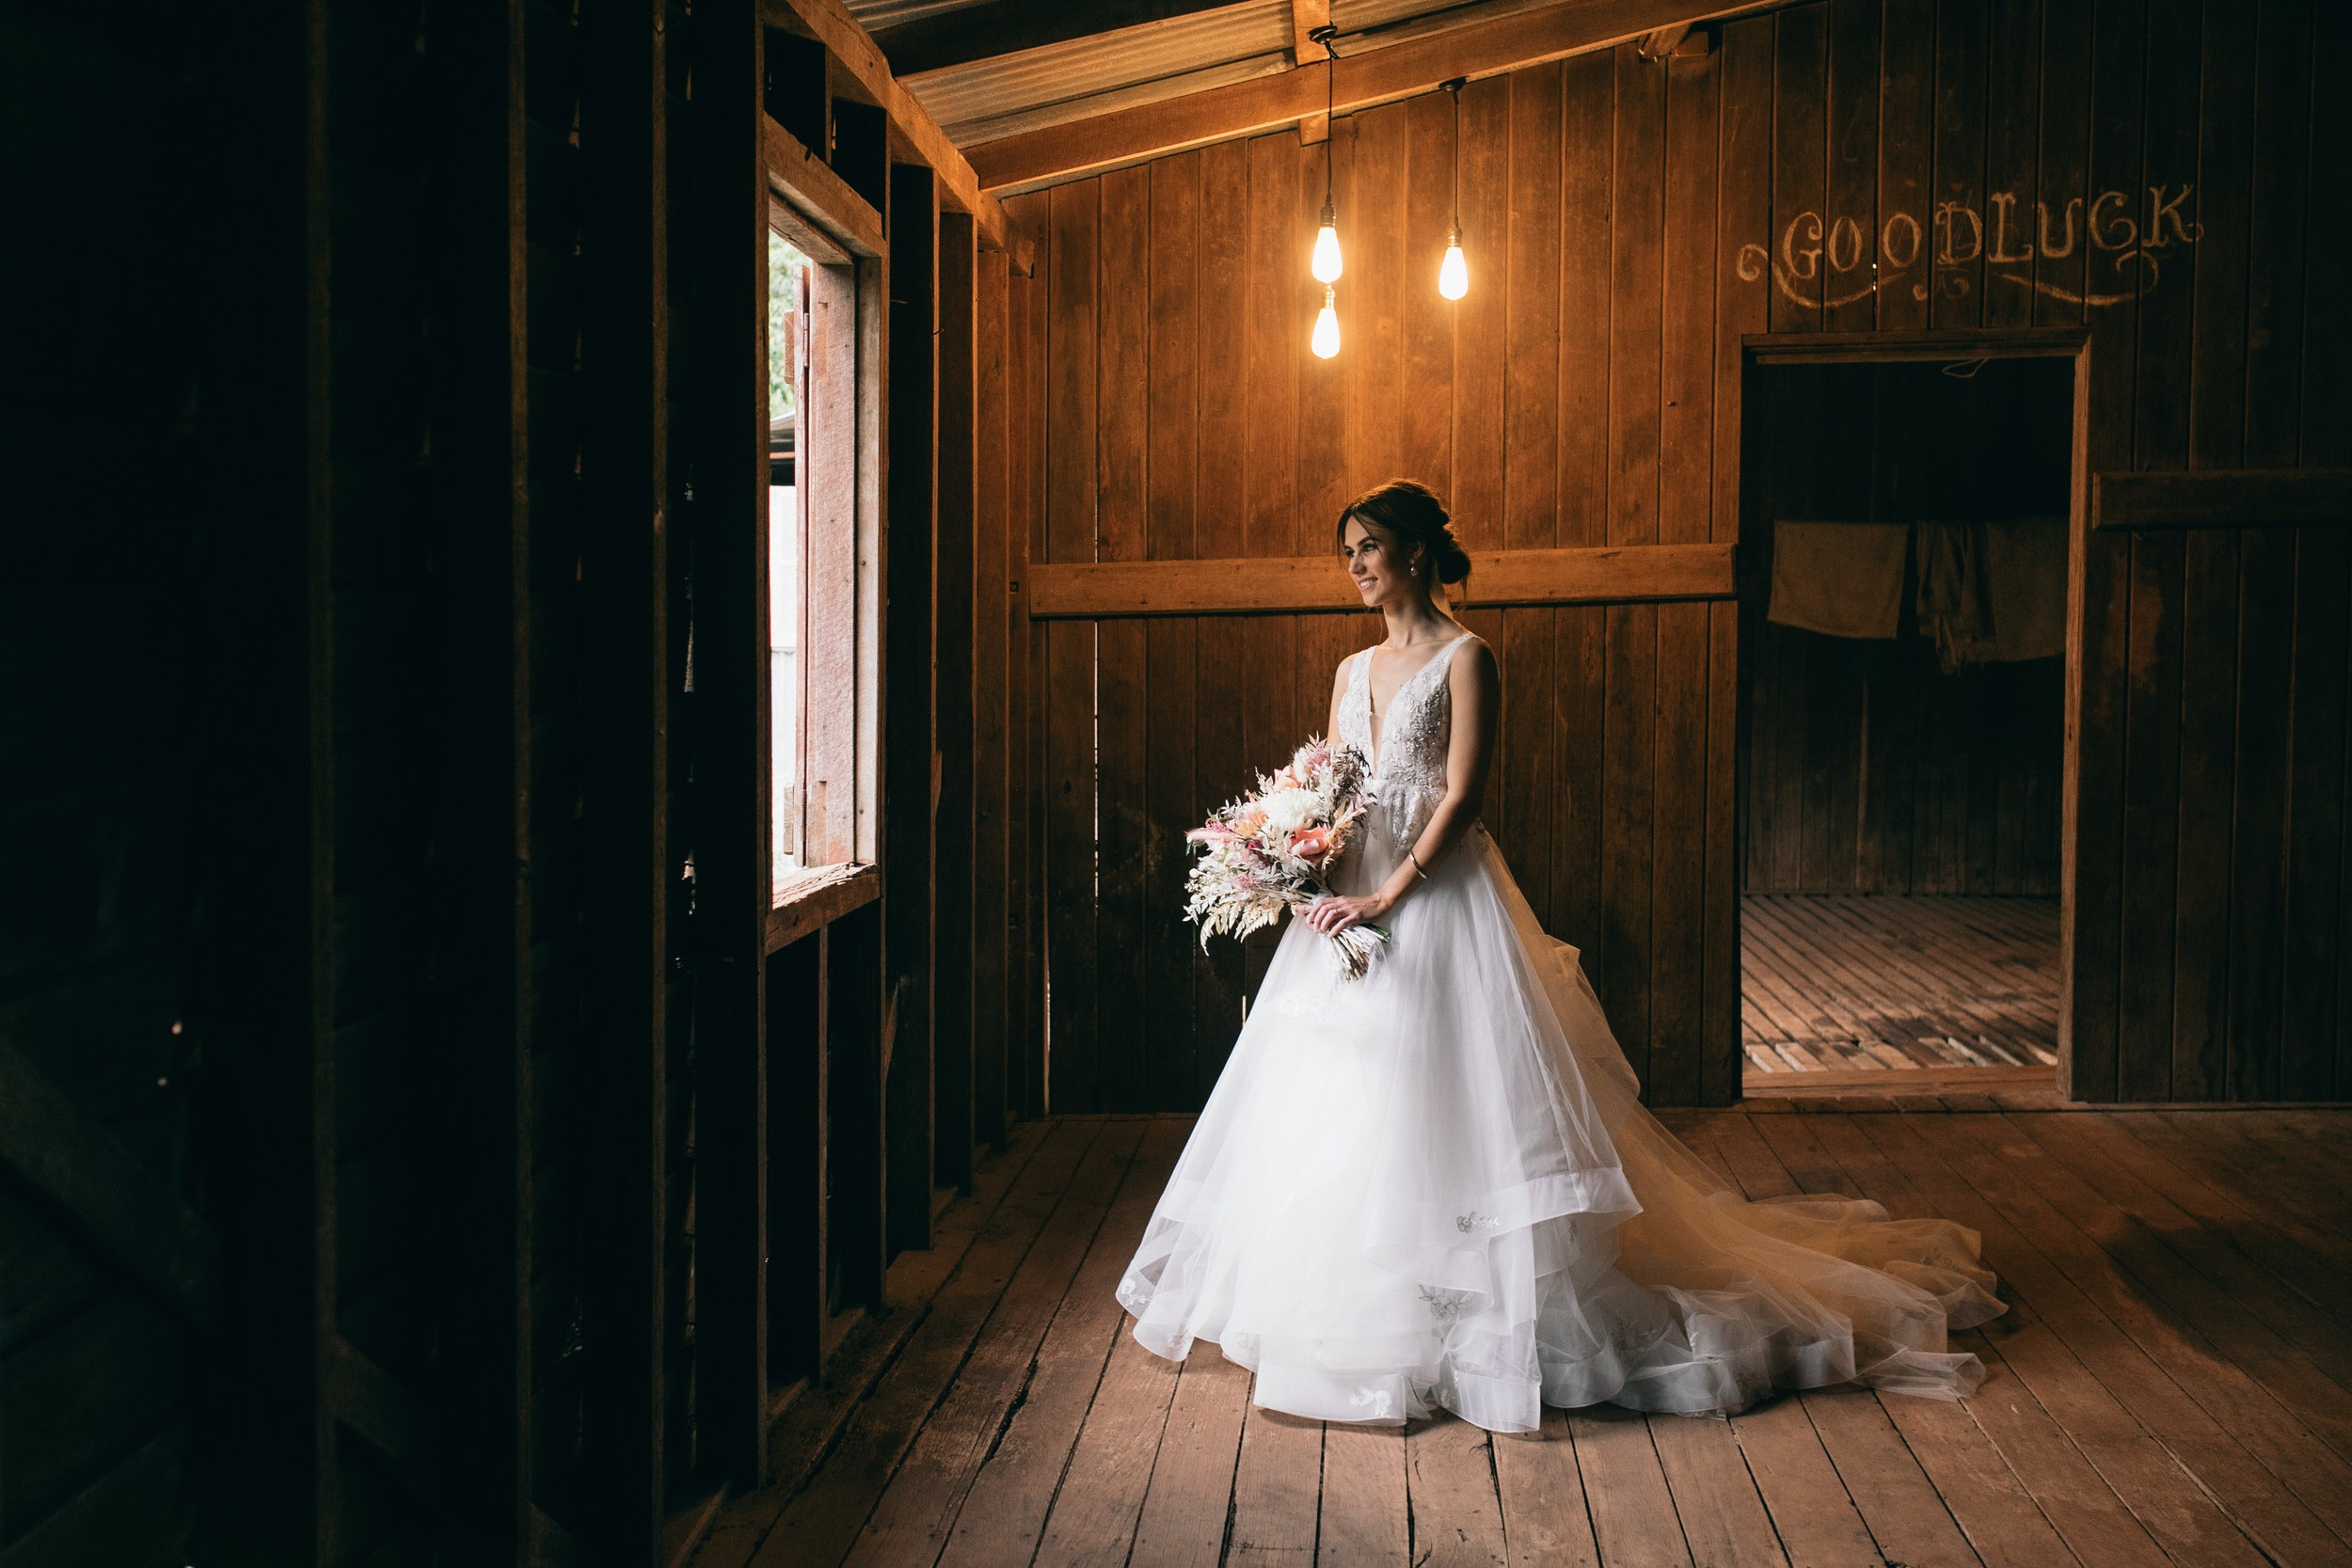 Bride in big white gown in country stables